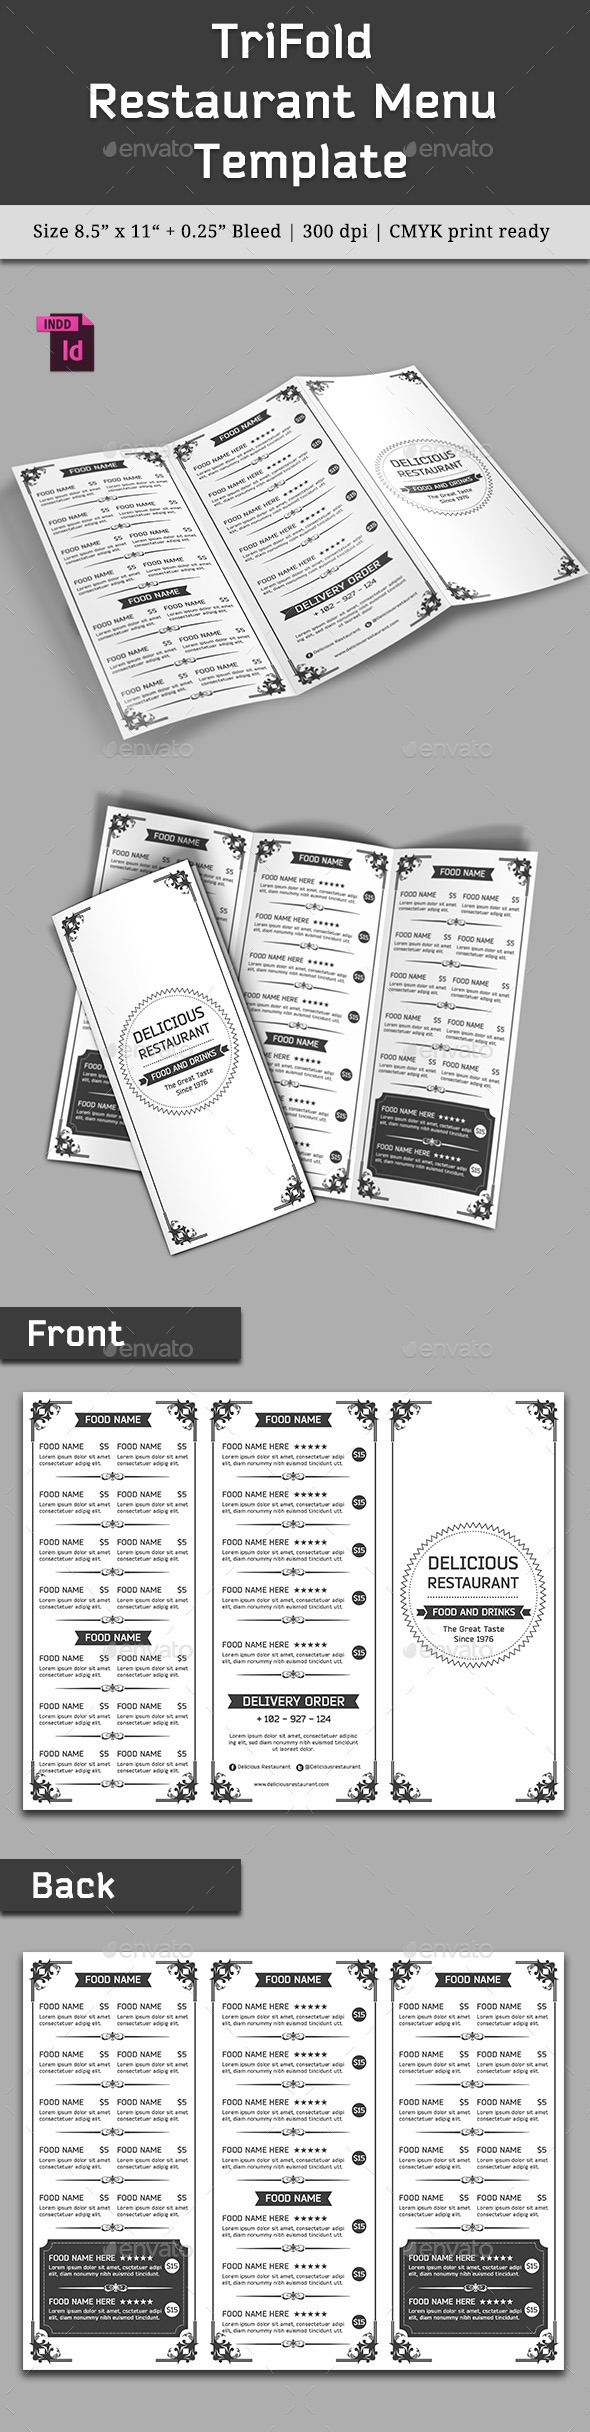 TriFold Restaurant Menu Template Vol. 7 - Food Menus Print Templates